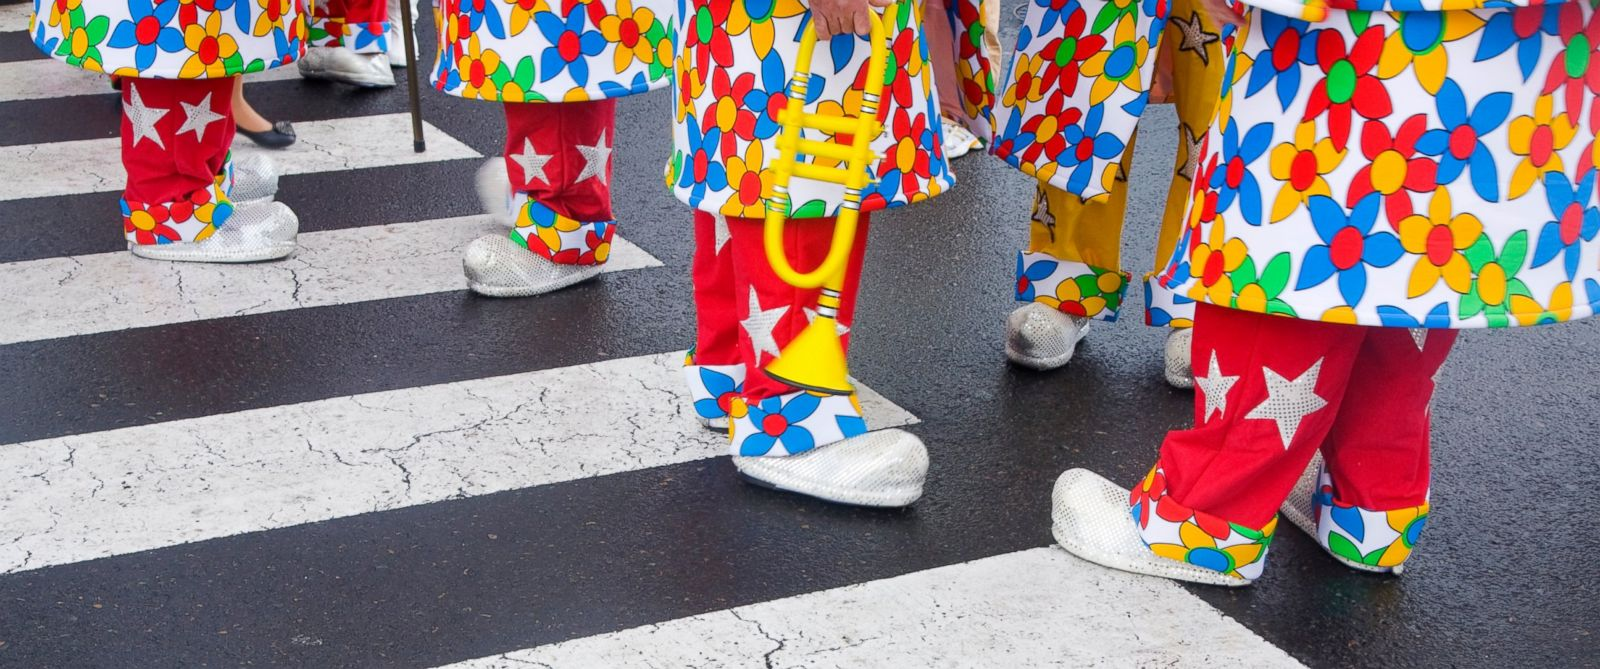 """PHOTO: A """"Clown Lives Matters"""" march in Tucson, Arizona was cancelled due to death threats."""